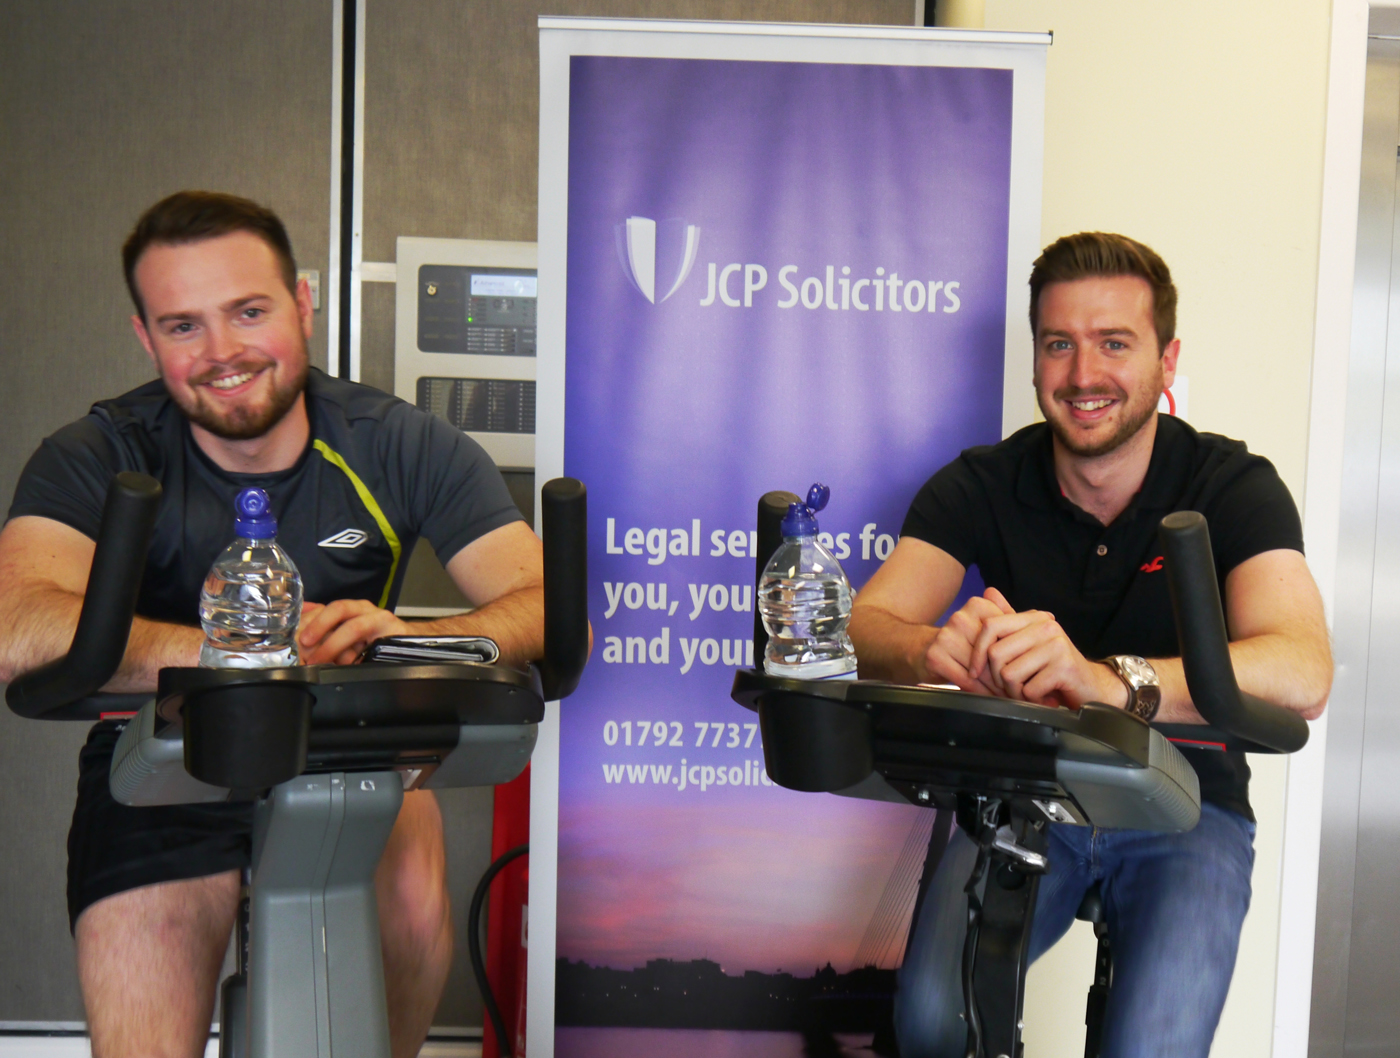 JCP Solicitors spinathon to help raise £800 for Macmillan Cancer Support x4